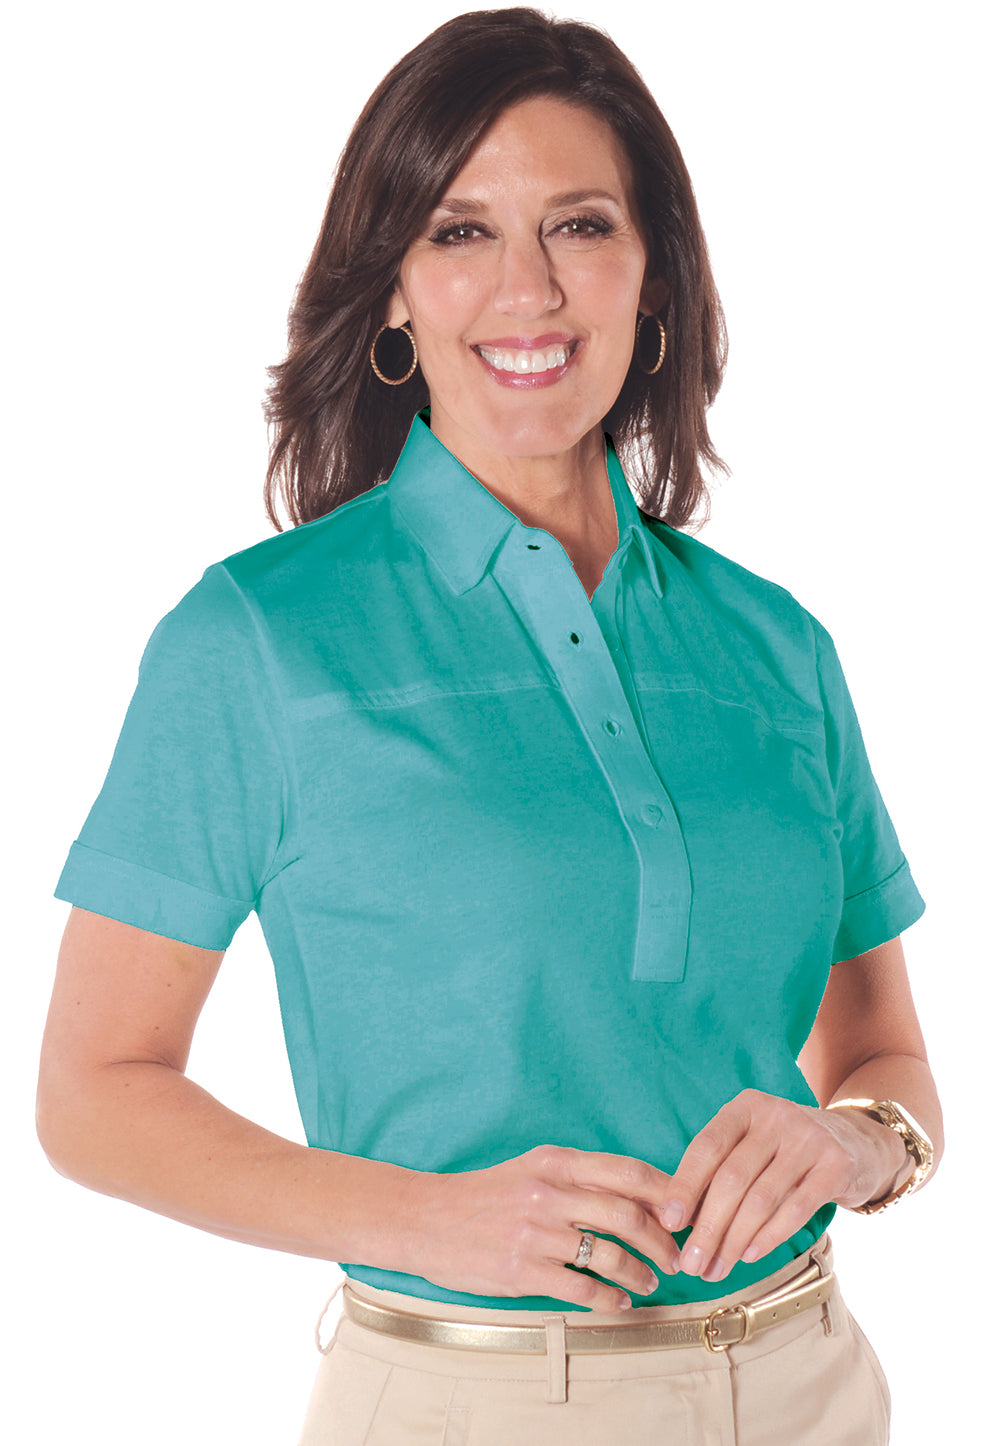 Petites Short Sleeve Solid Polo Shirt</br>Bright Teal 20E - Leonlevin